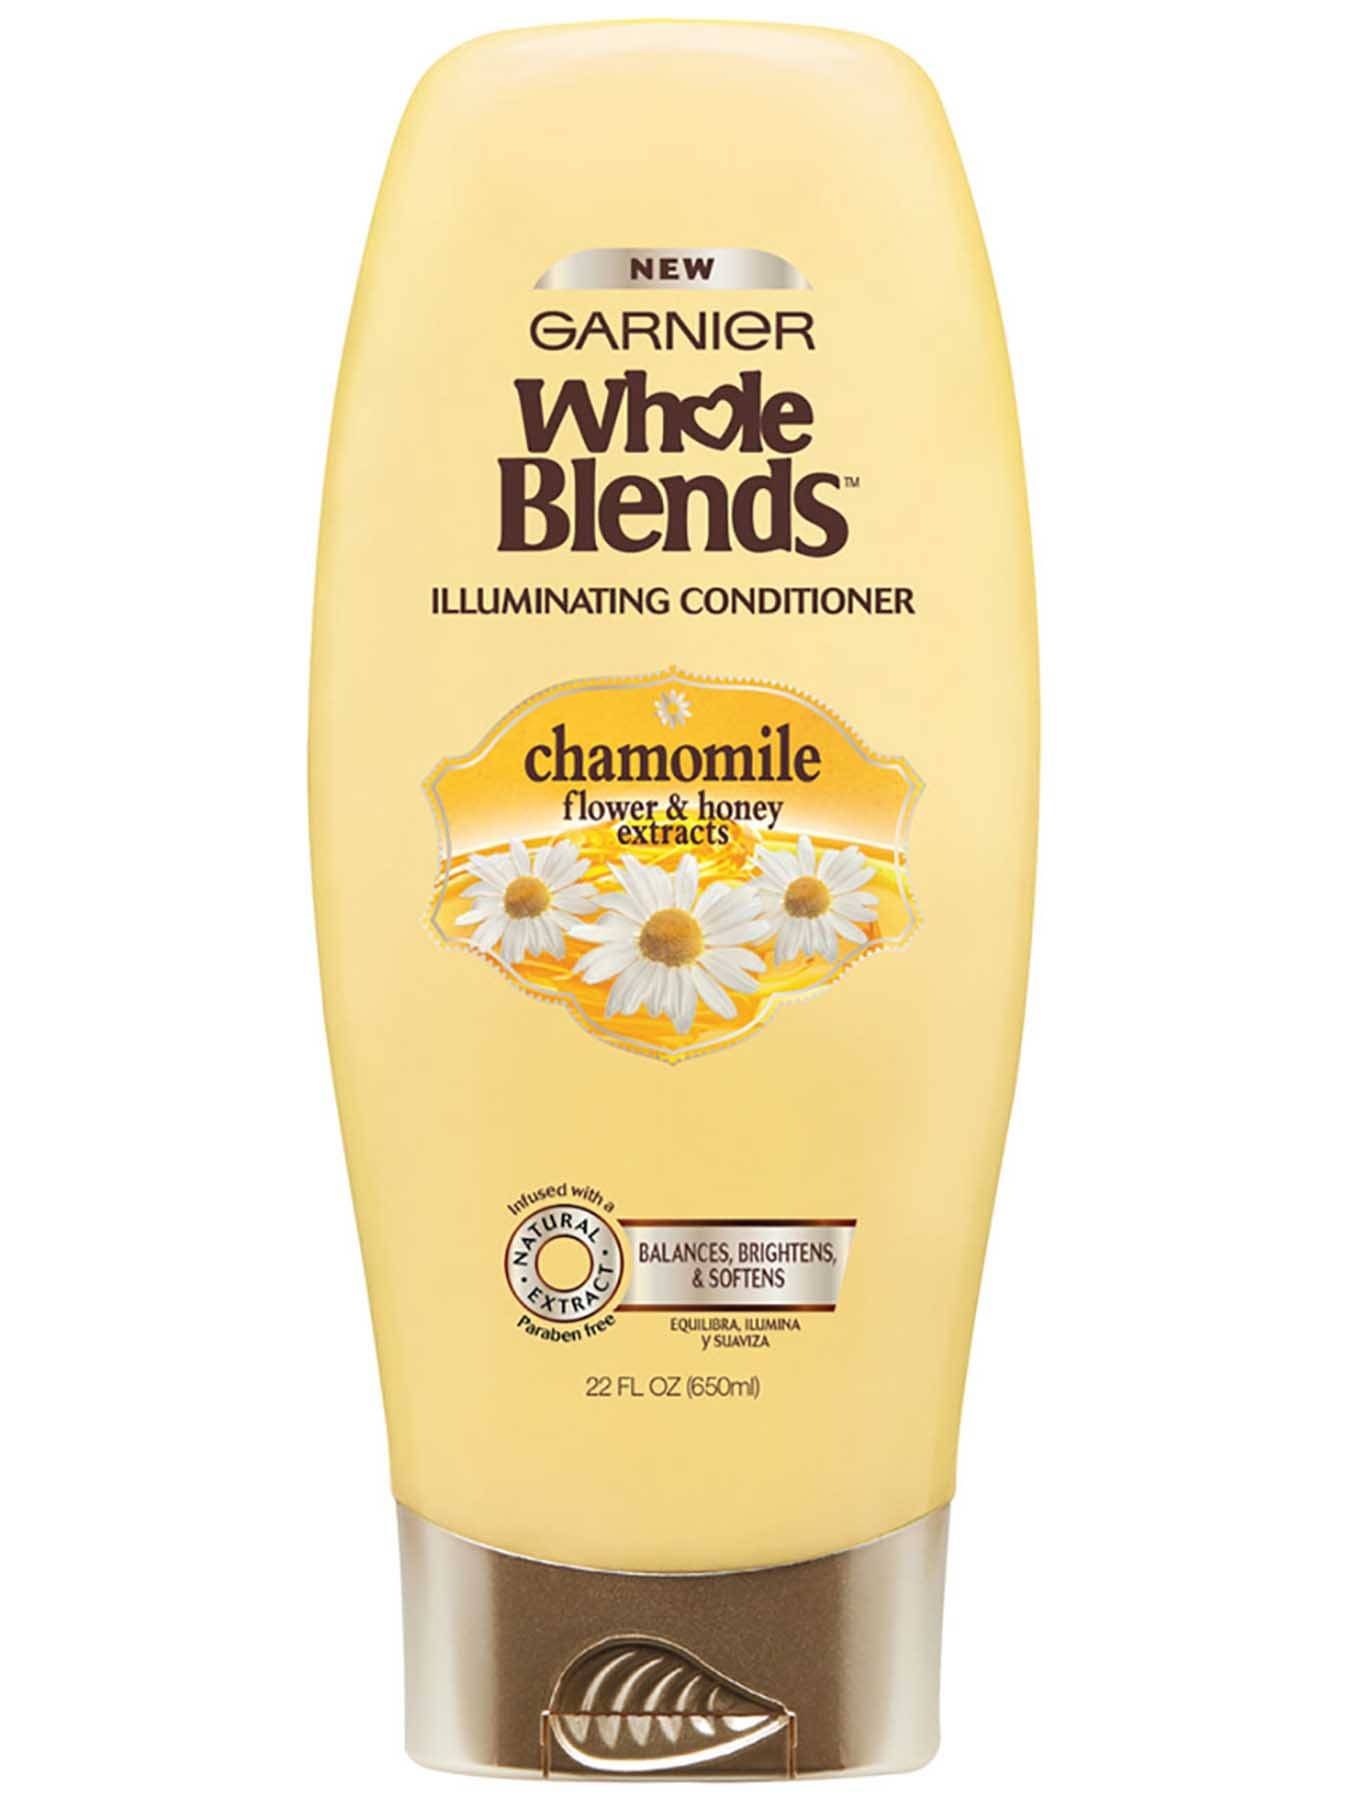 Front view of Illuminating Conditioner with Chamomile Flower and Honey Extracts, Silicone-Free.